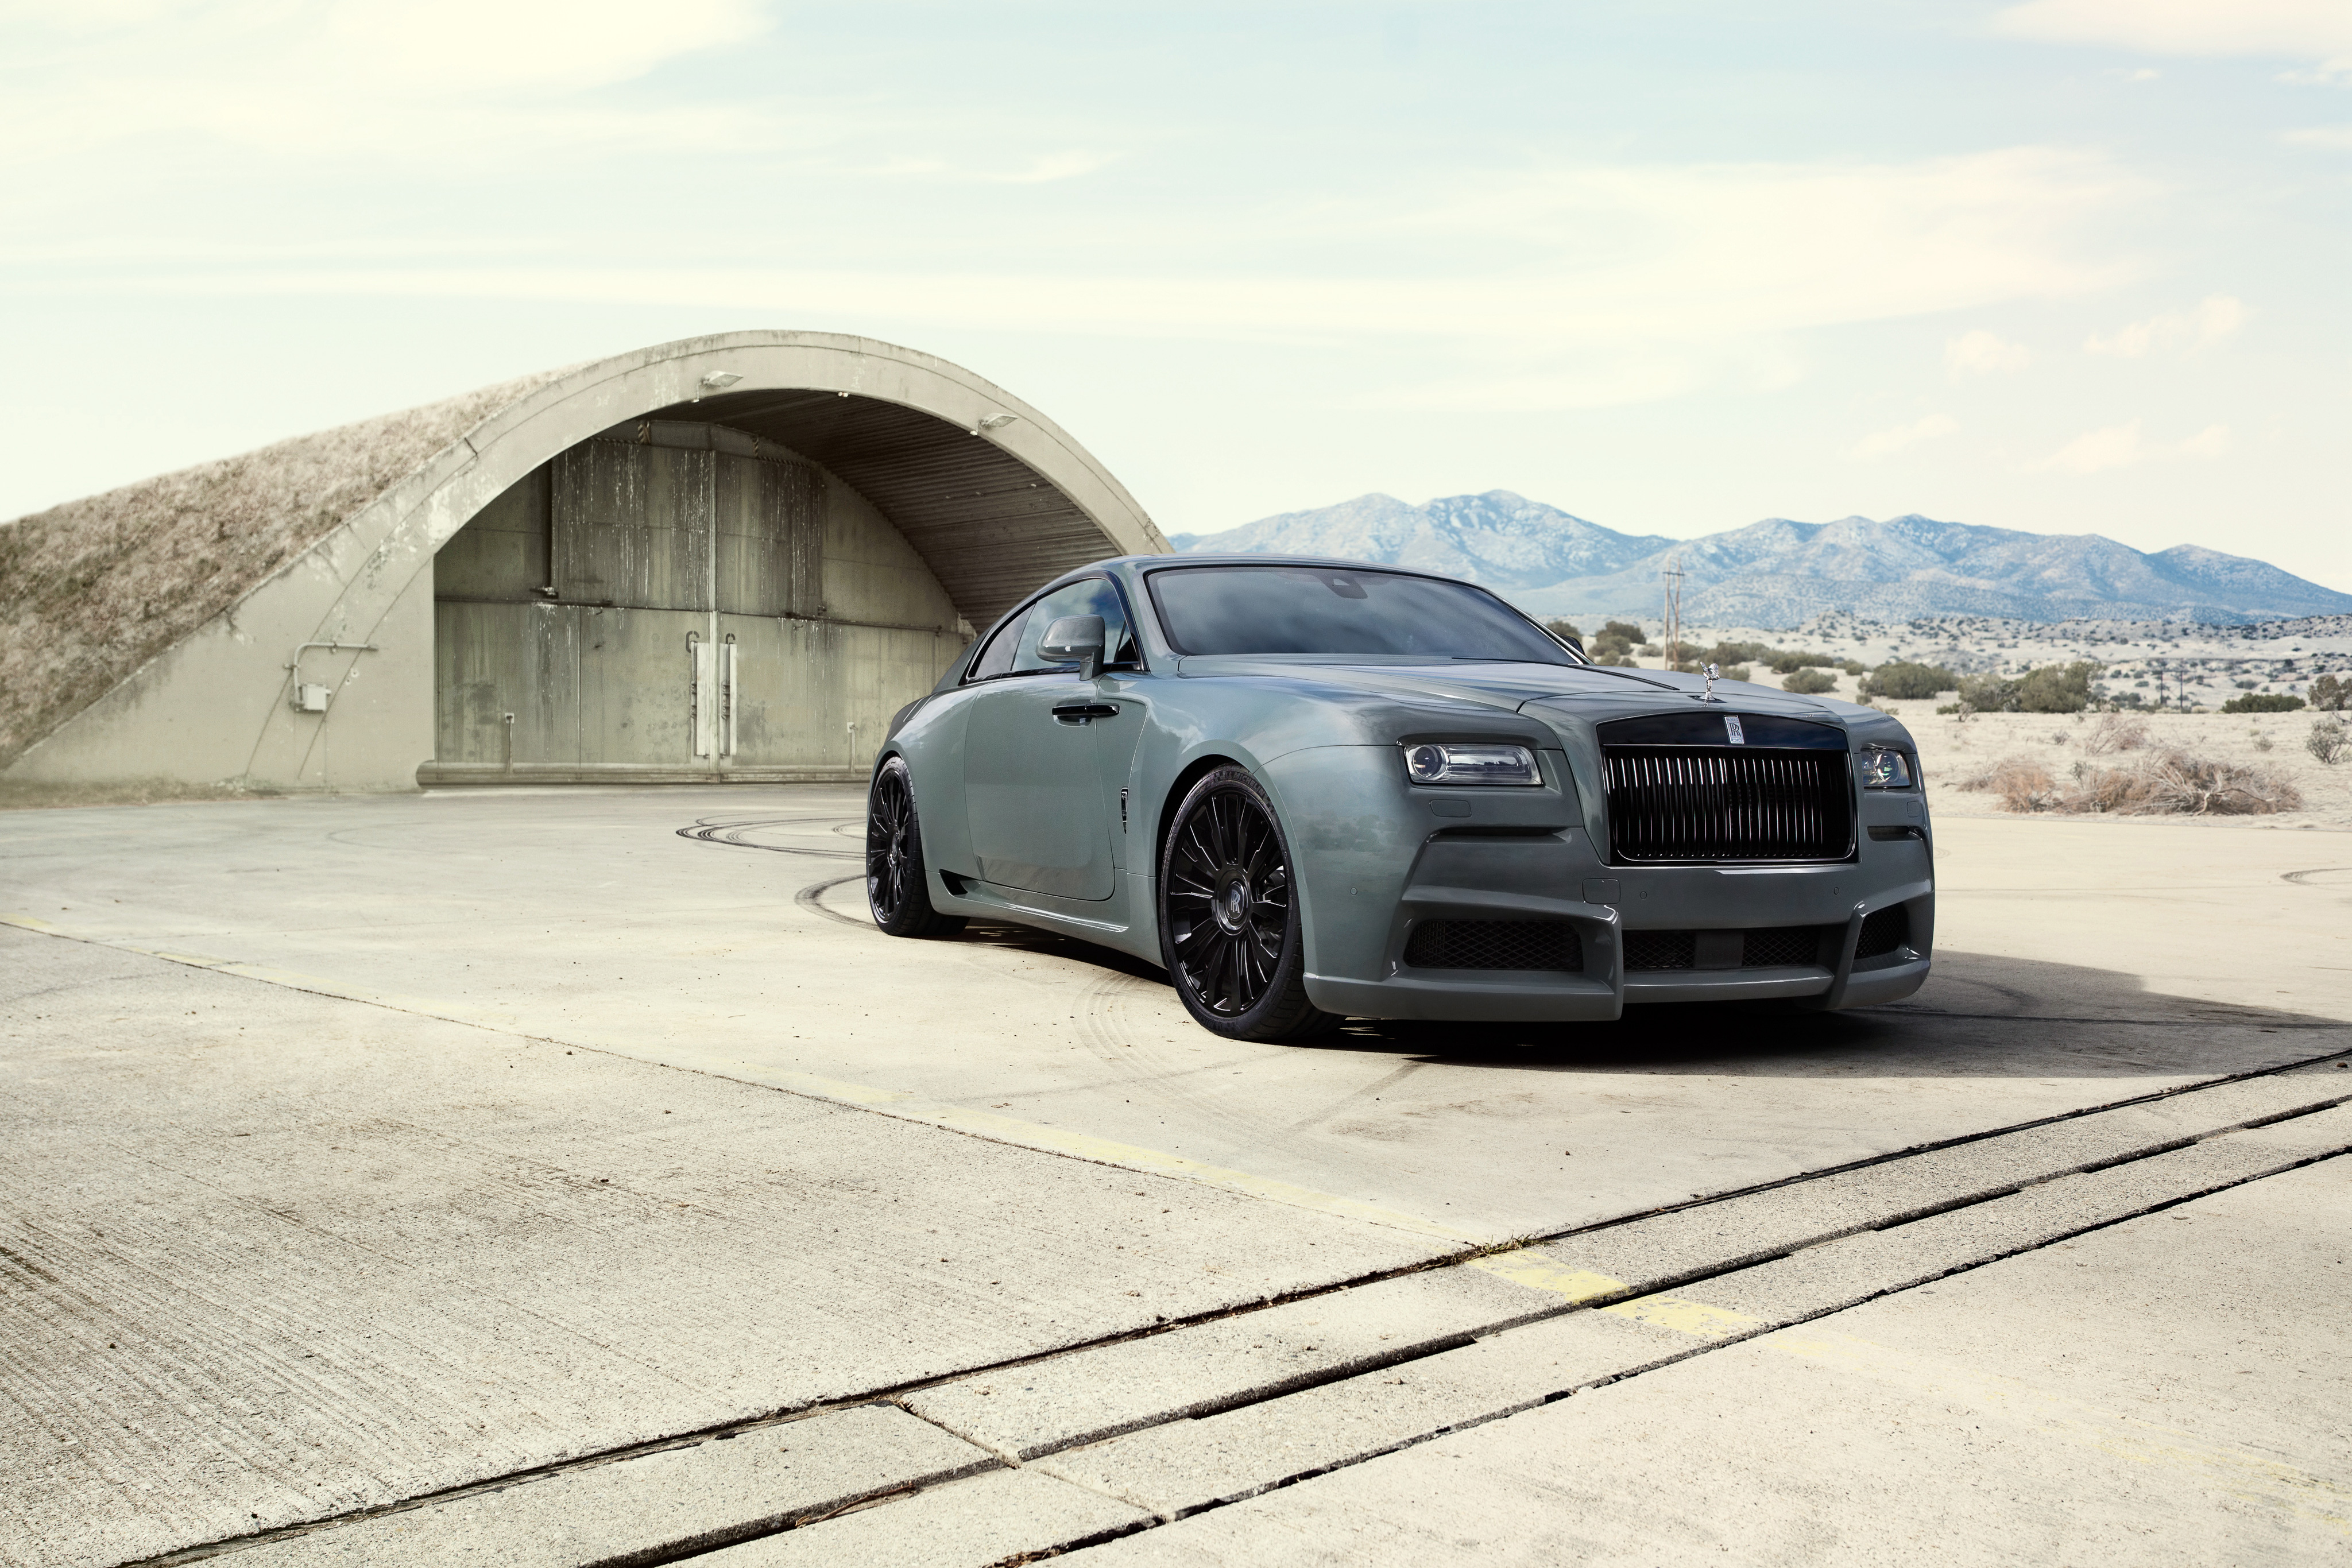 rolls royce wraith 4k, hd cars, 4k wallpapers, images, backgrounds